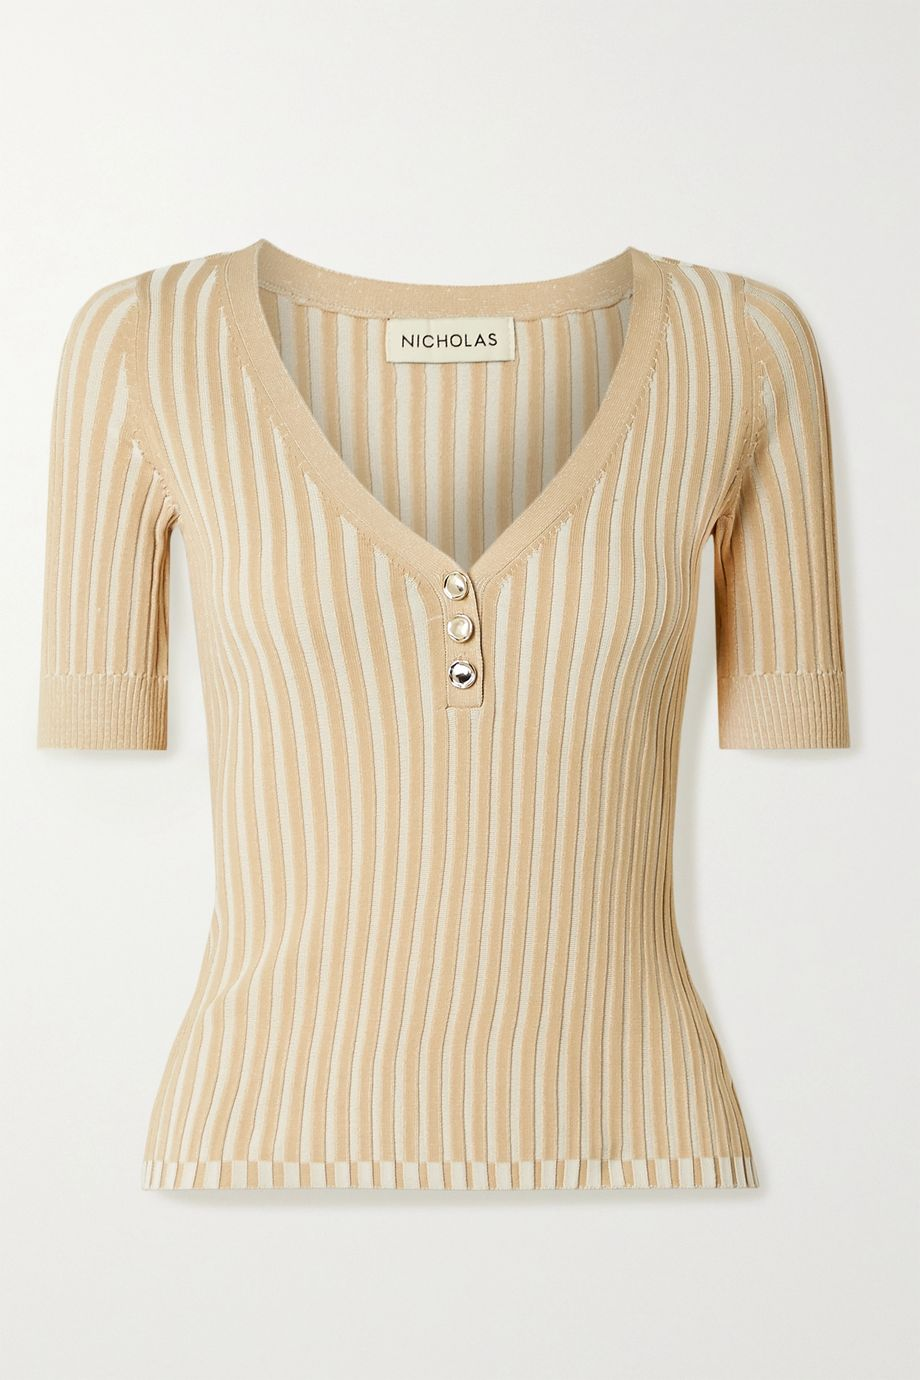 NICHOLAS Epices ribbed-knit top